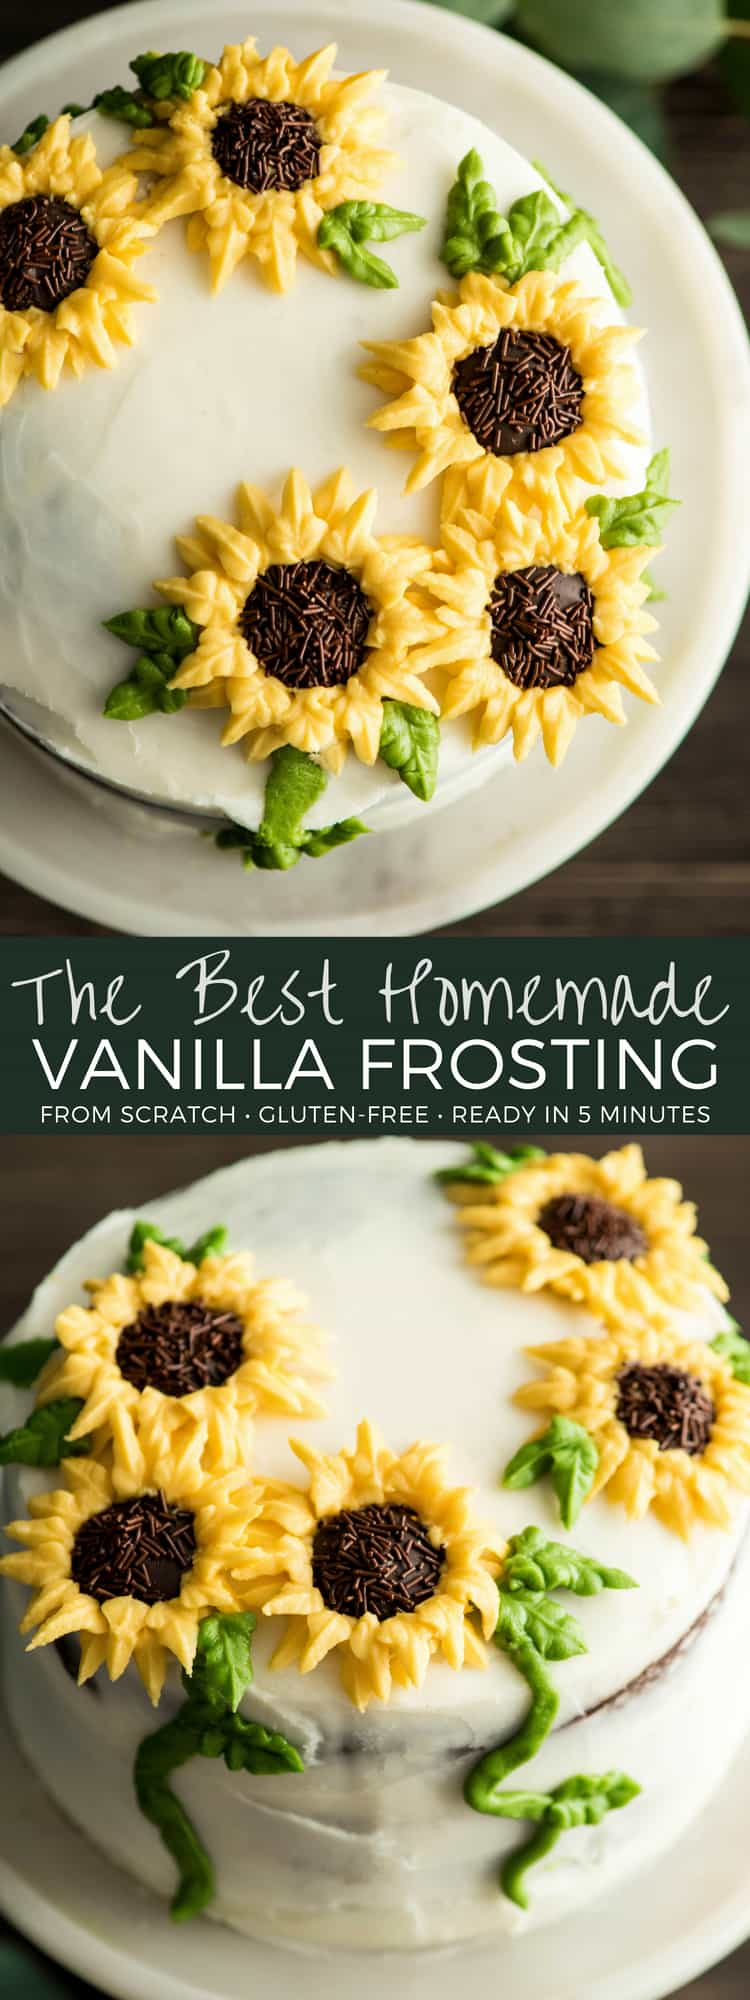 The BEST homemade vanilla frosting recipe!  5 minutes and 6 ingredients is all it takes to make the best frosting at home! Ditch the store-bought varieties! Great for decorating cakes & cookies! #homemadefrosting #buttercream #frosting #cake #birthday #cakedecorating